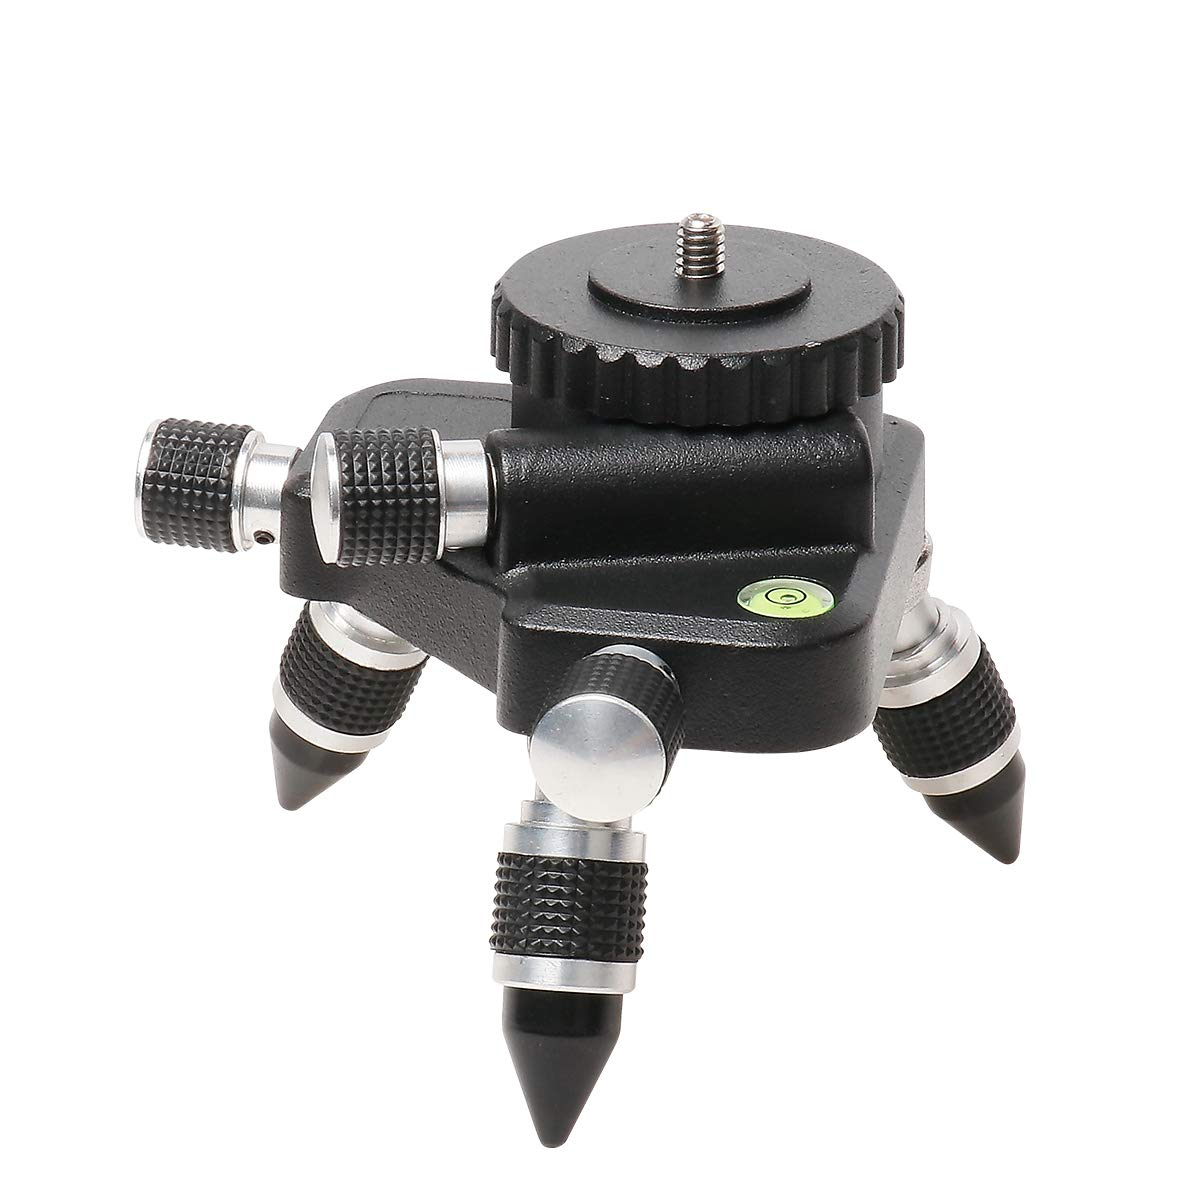 360/° Rotating Base for Line Laser Level Tripod Connector Adjust Fine Turning Pivoting Base Manually Operated Micro with Standard 1//4 Threaded Mount Huepar AT2 Bracket Laser Level Adapter